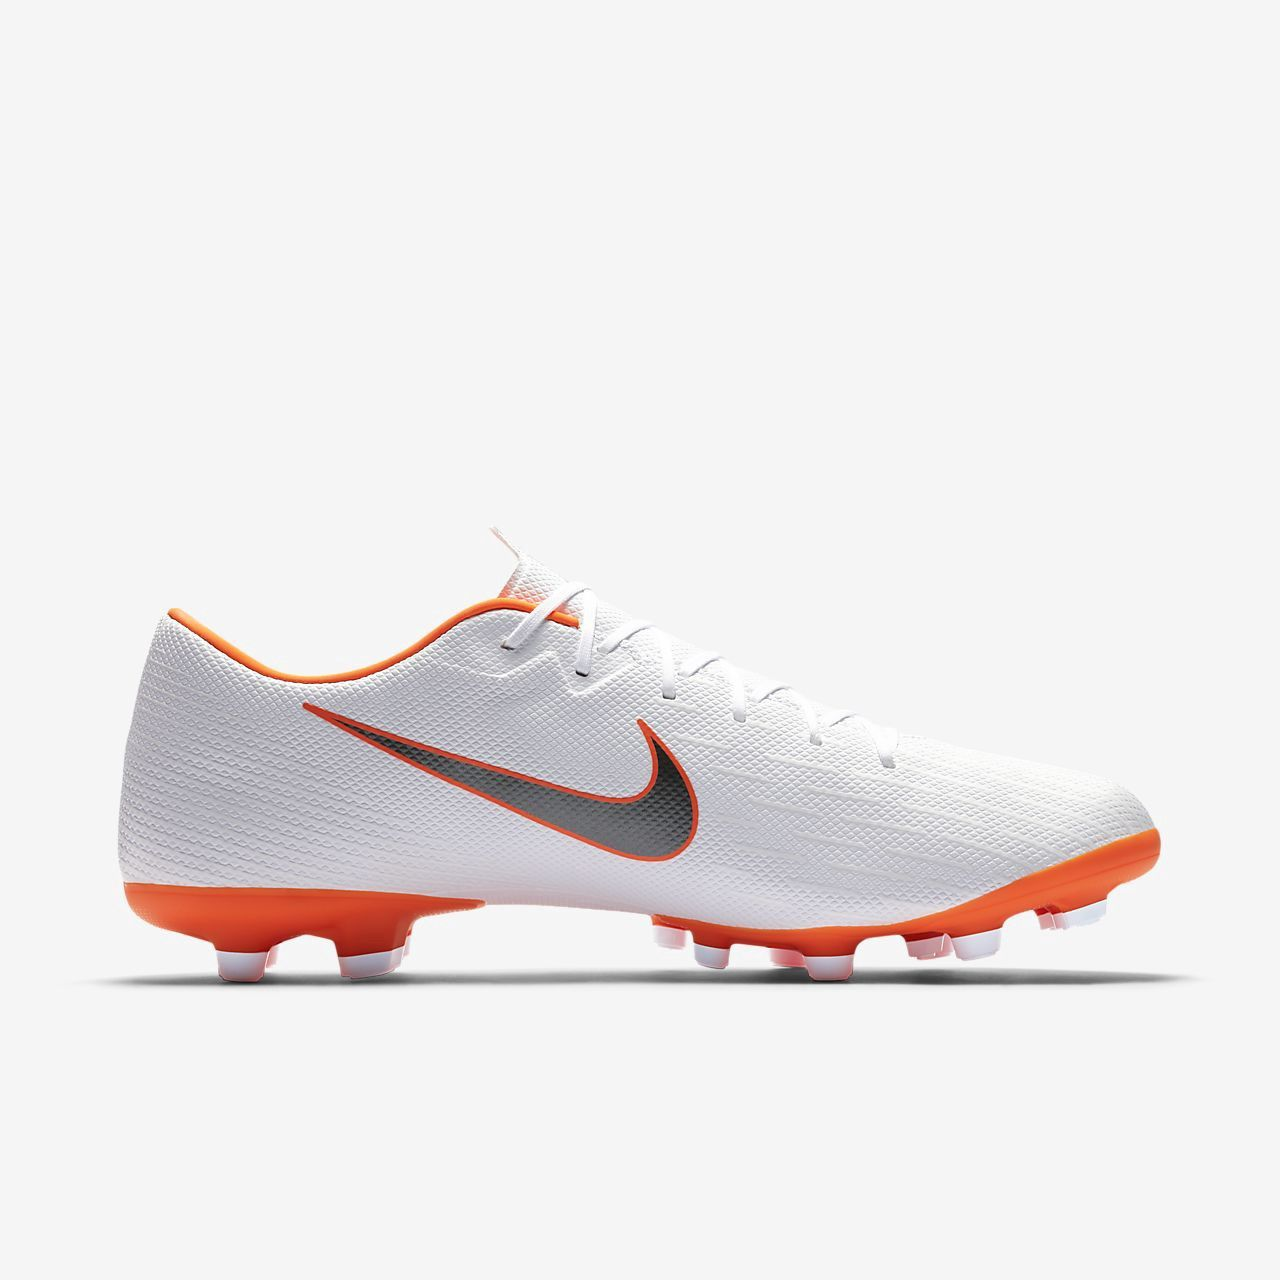 375d734fe95 Nike Mercurial Vapor Xii Academy Multi-Ground Soccer Cleat - M 10   W 11.5